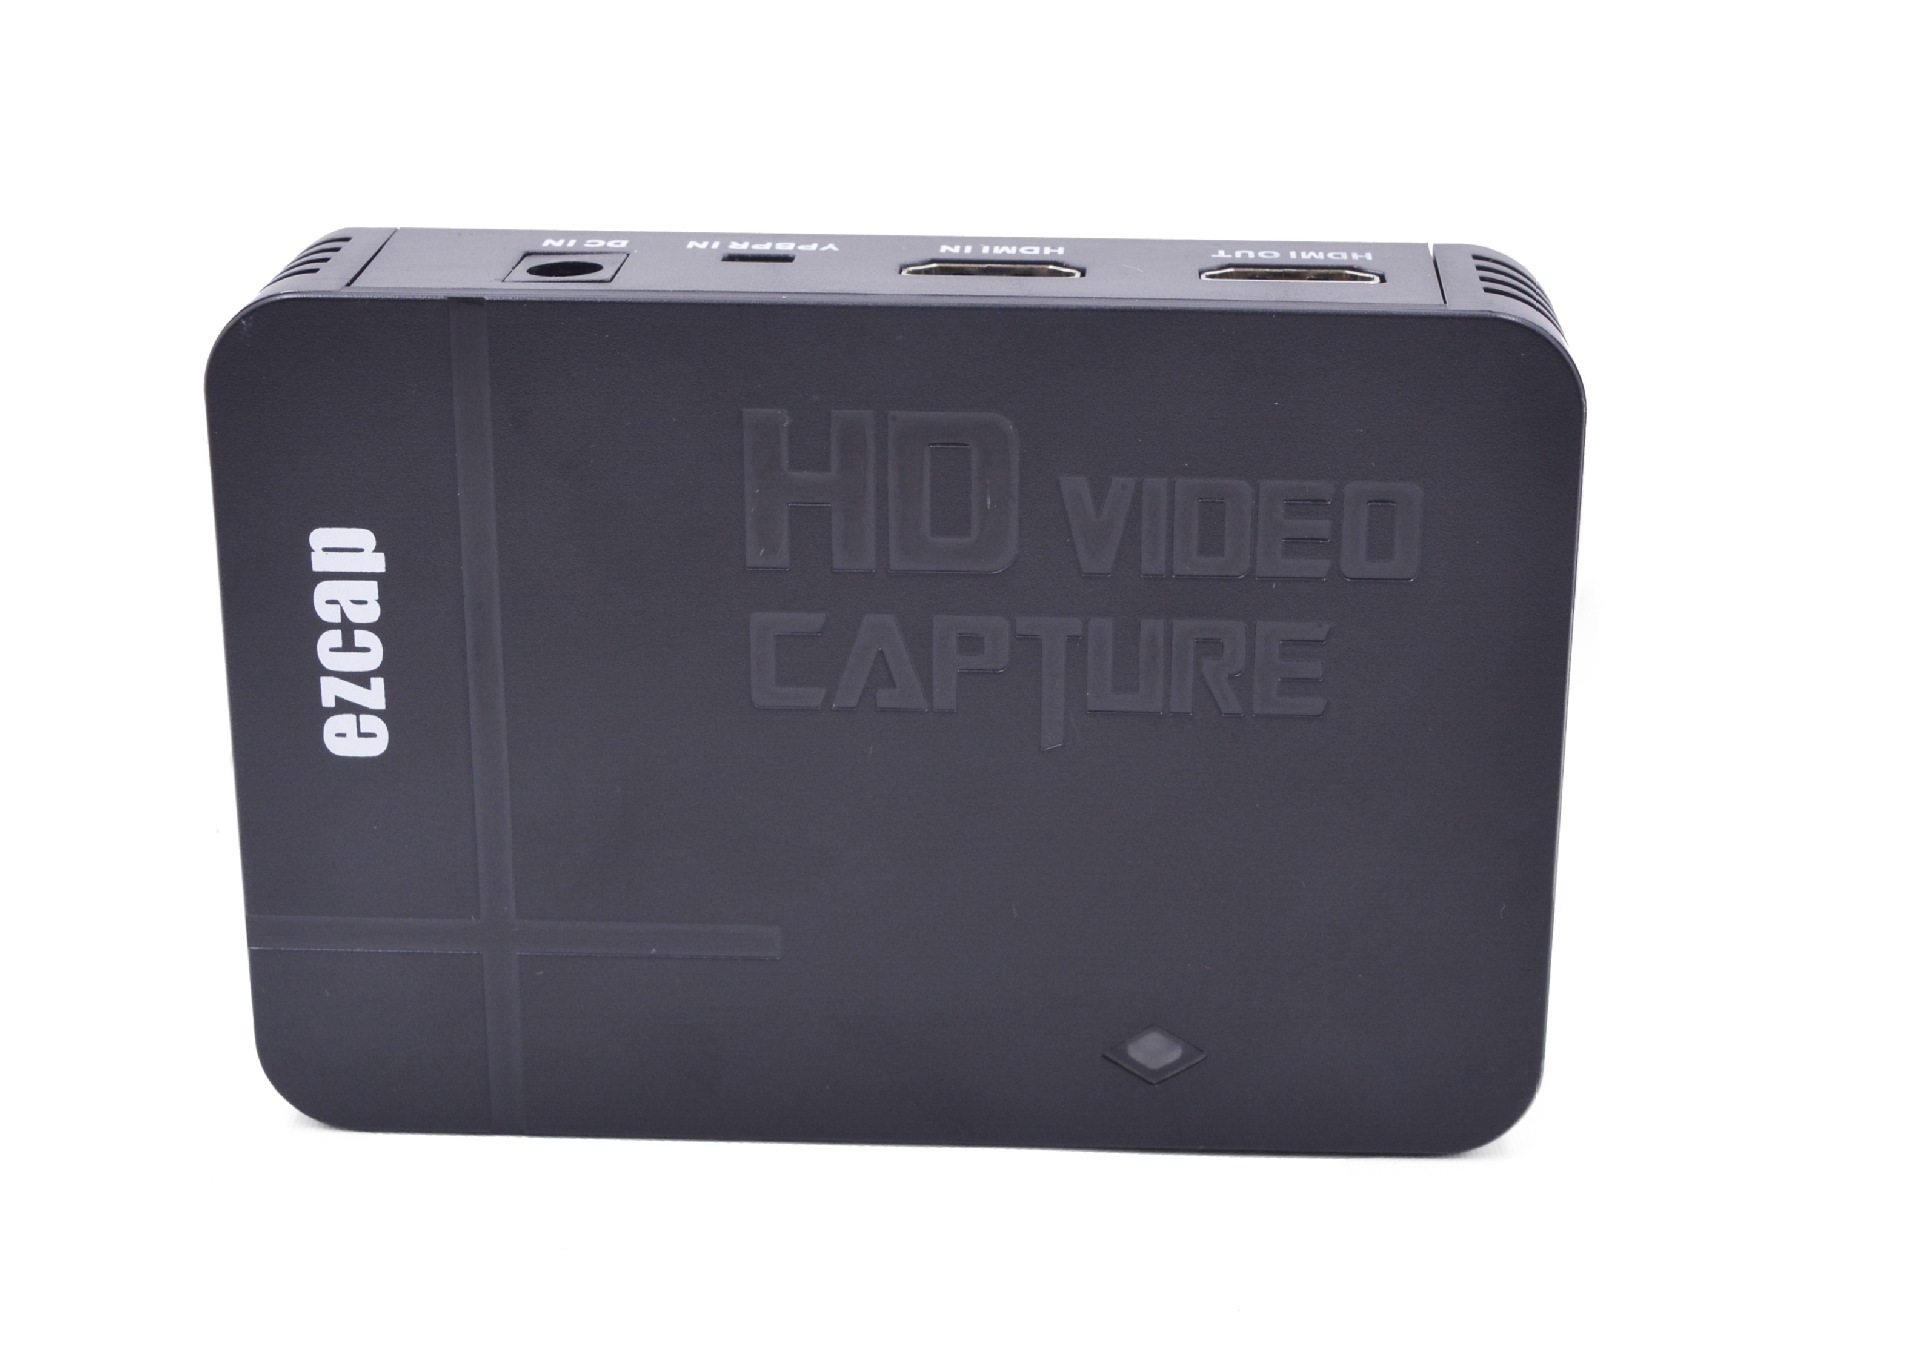 newest-ezcap-hd-game-video-capture-card-box-1080p-hdmi-ypbpr-recorder-for-xbox-one-360-ps3-ps4-tv-video-camera-medical-recording